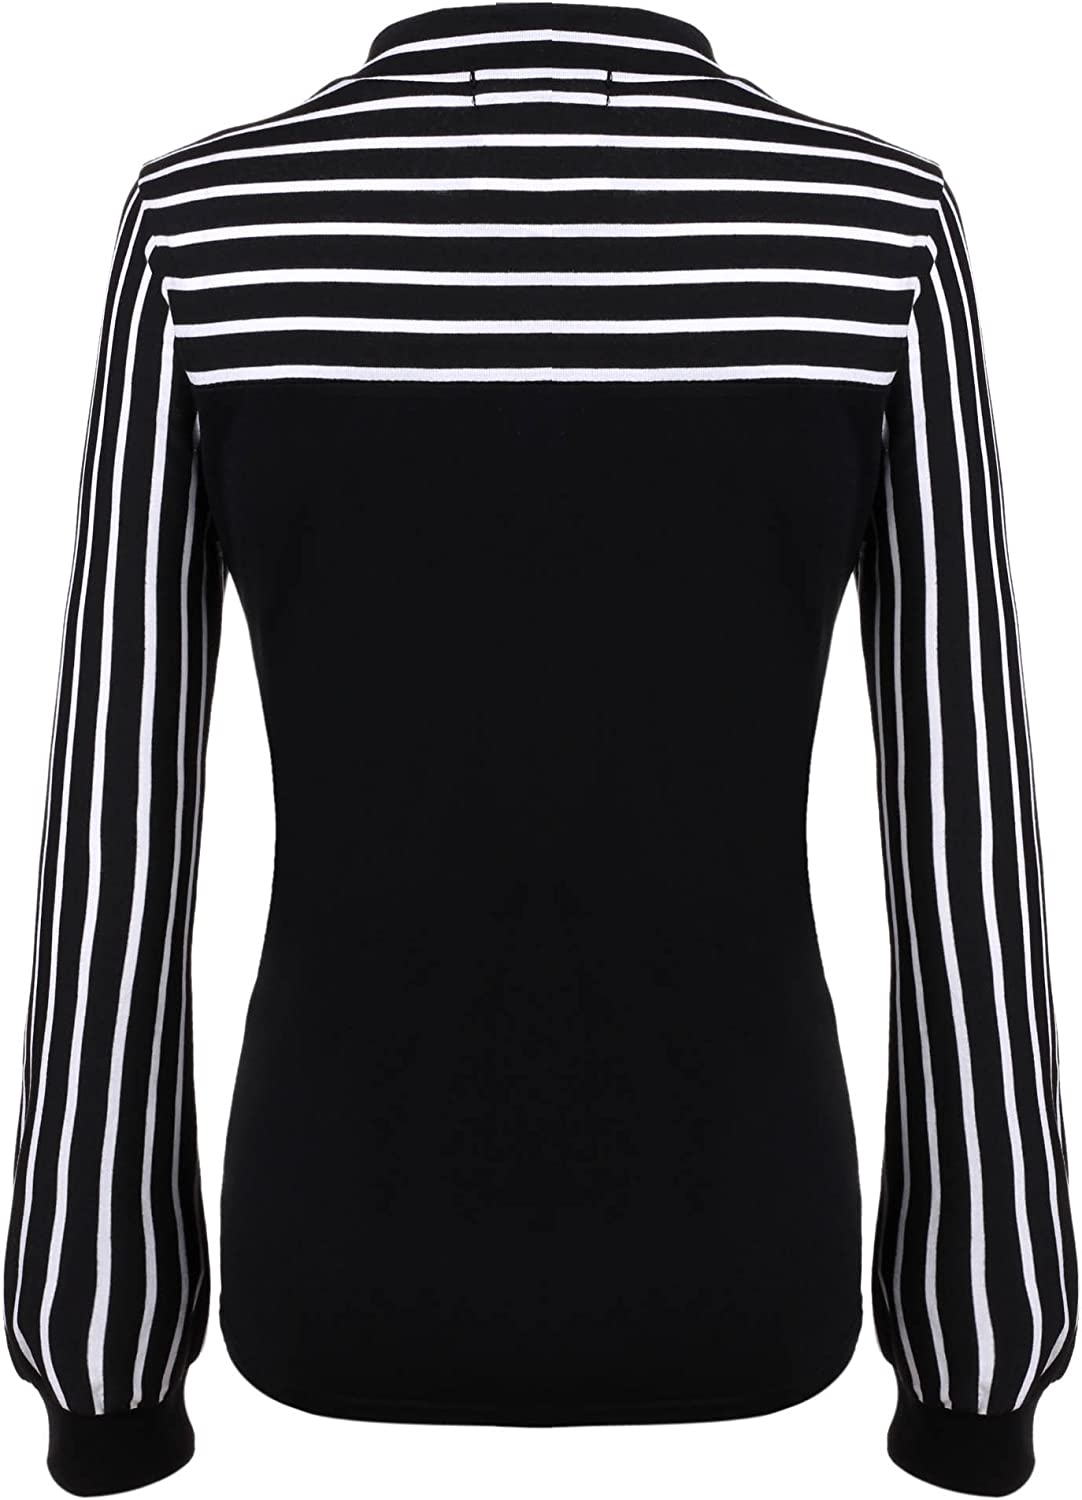 Women's Tie-Bow Neck Striped Blouse Long Sleeve Shirt Office Work Splicing Blouse Shirts Tops: Clothing